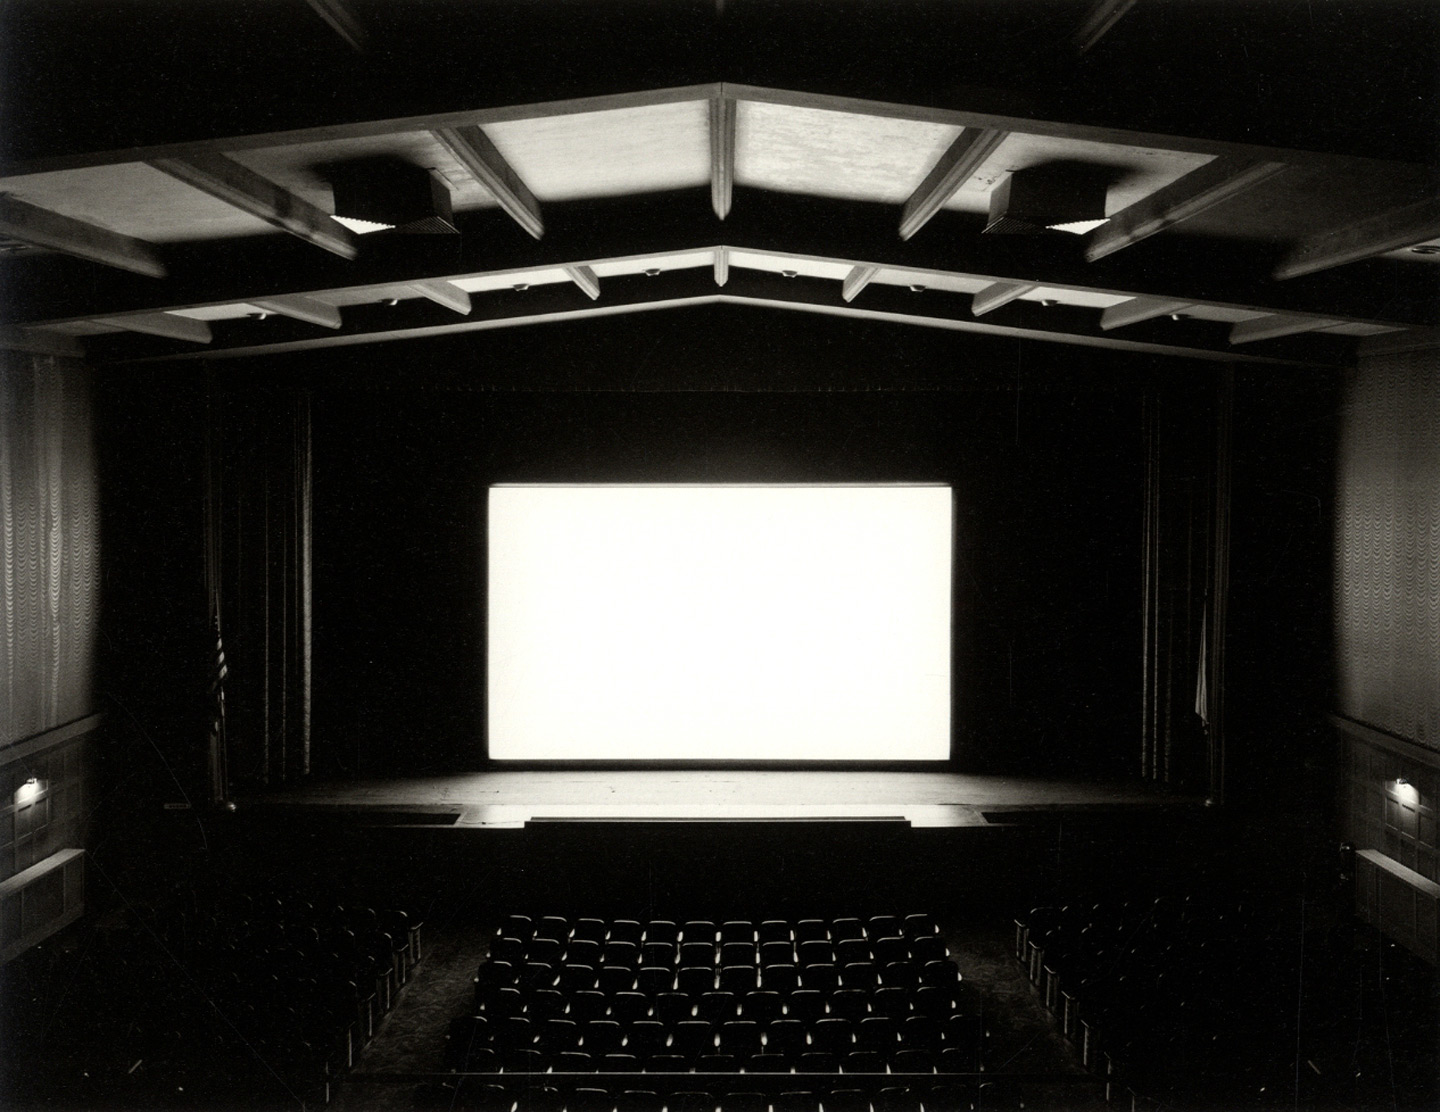 Hiroshi Sugimoto: Dioramas, Seascapes and Theaters (Set of 3 Damiani Books) [SIGNED in English]